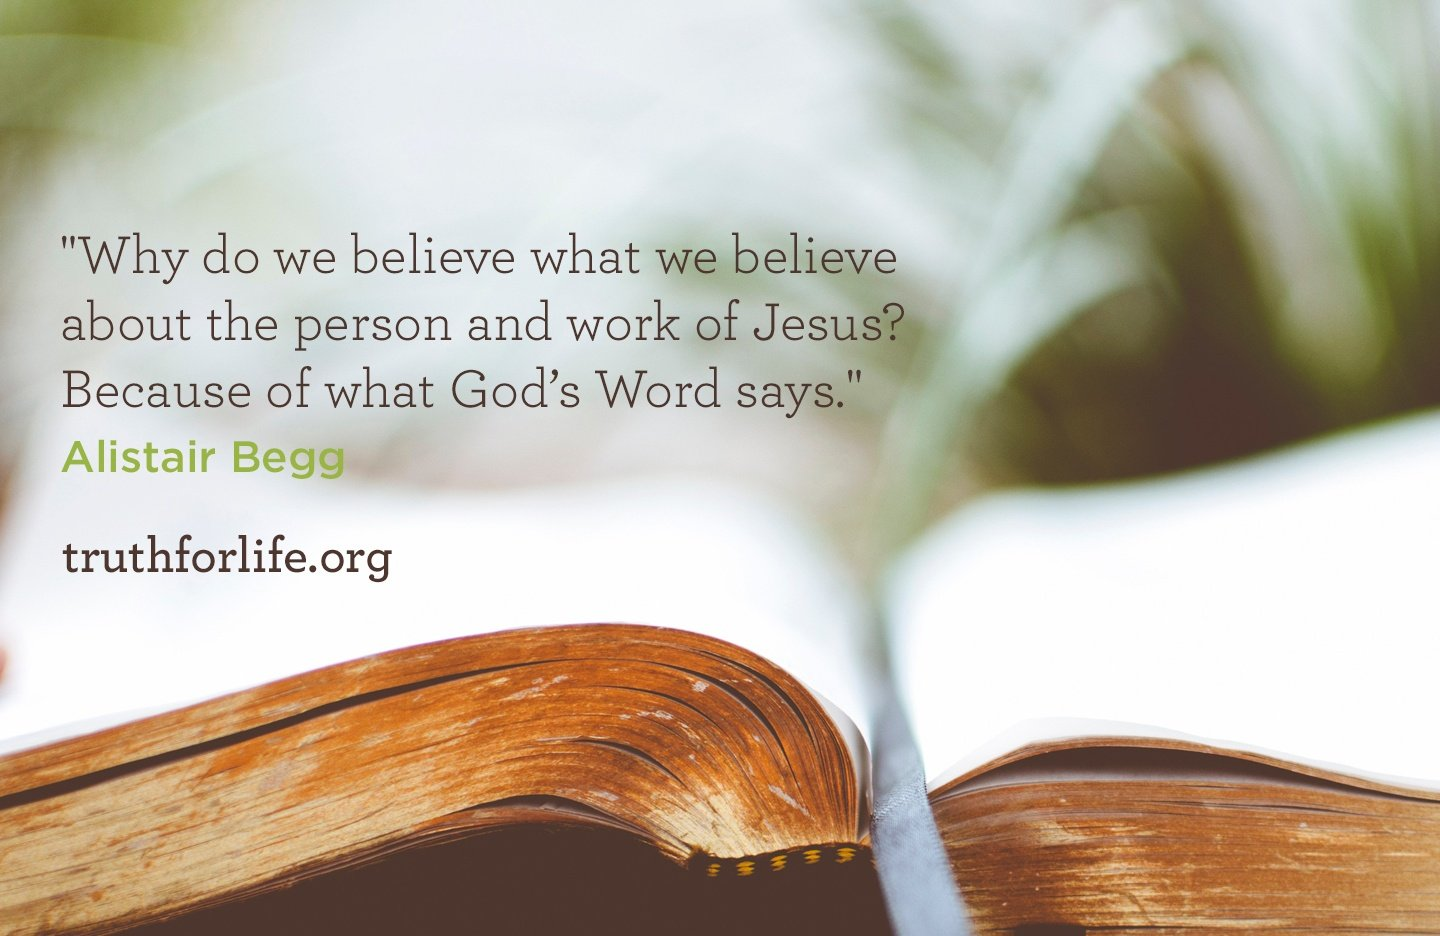 Why do we believe what we believe about the person and work of Jesus? Because of what God's Word says. - Alistair Begg